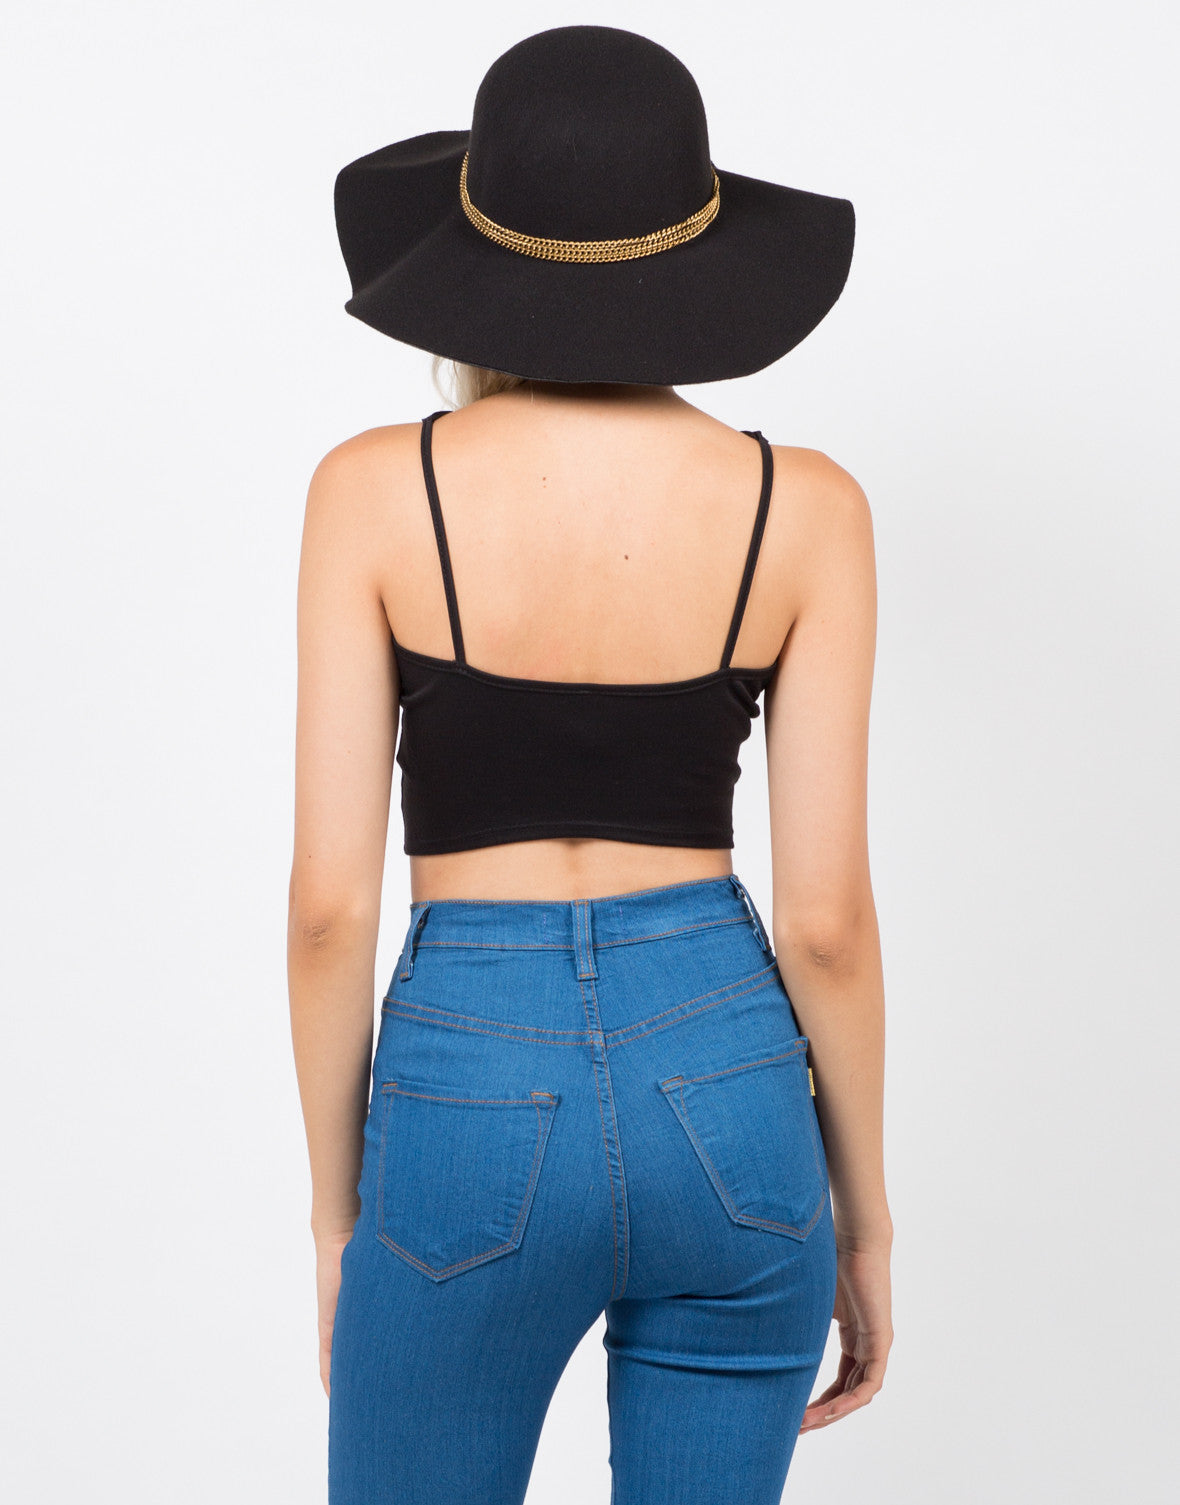 Back View of Strapped In Crop Top